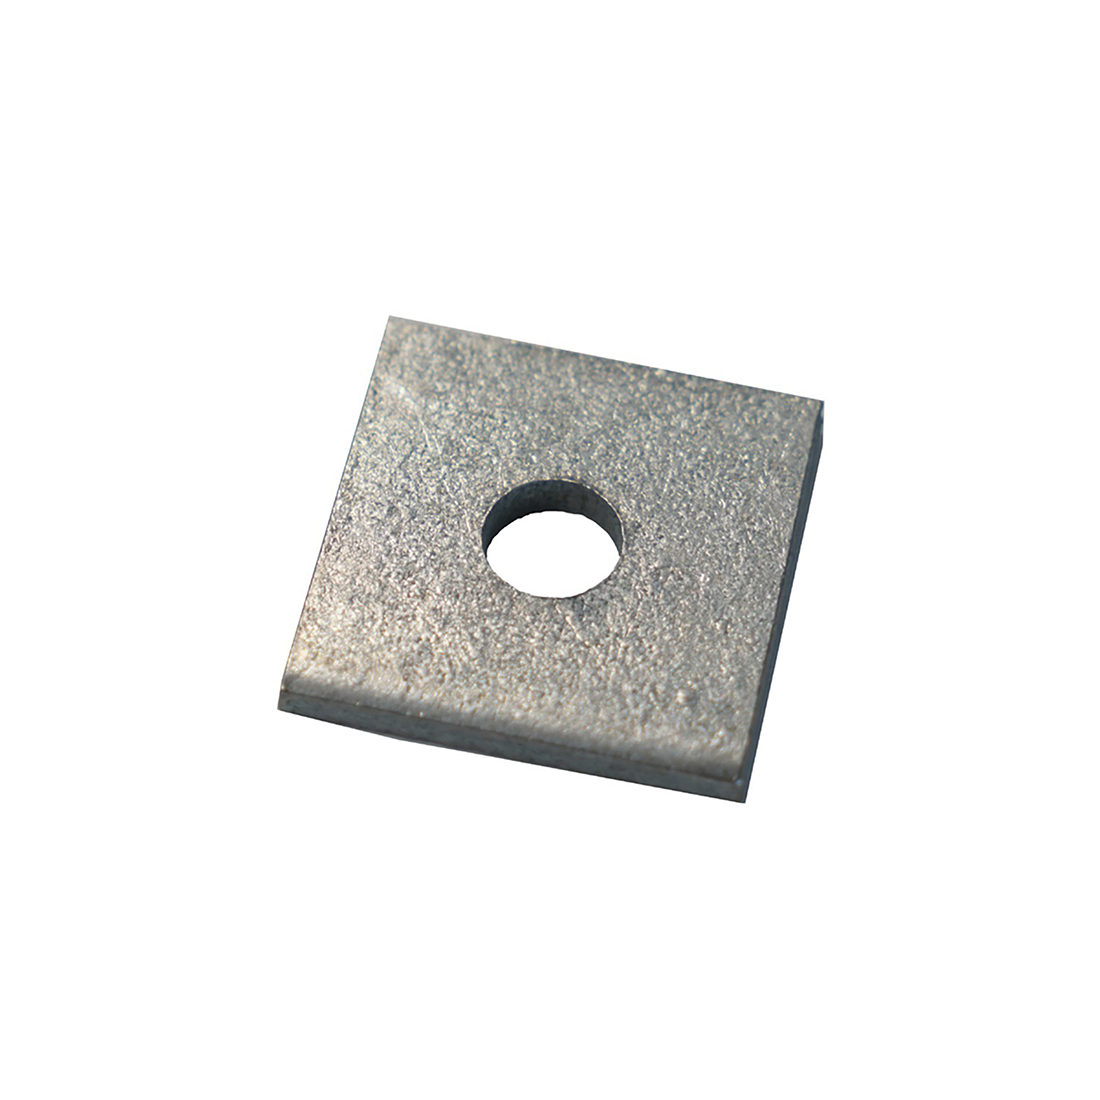 Dipped Galvanised Square Bracket 1 Hole, 12mm Holes, M10 x 40 x 5mm - Pack of 50